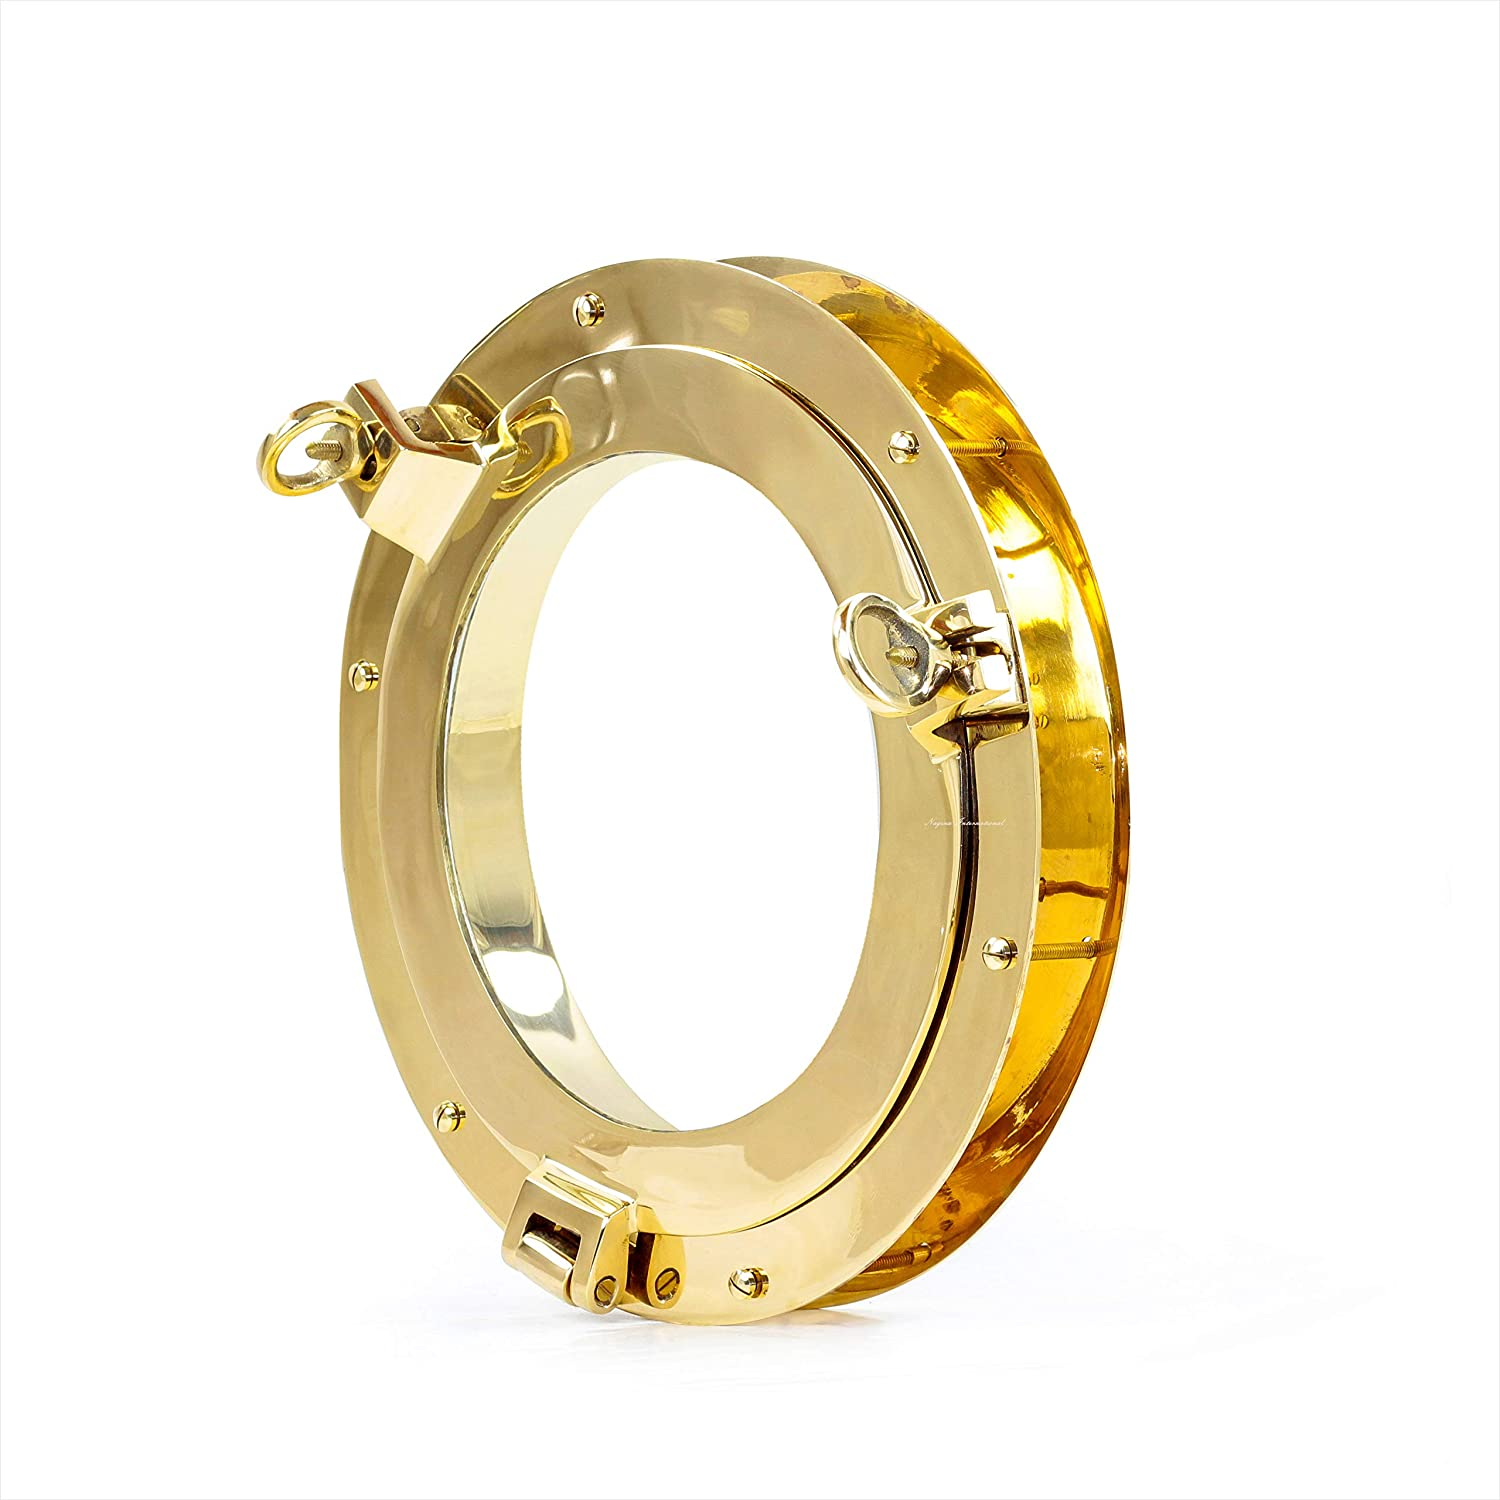 Nagina International Authentic Brass Nautical Heavy Duty Porthole Window with Adjustable Flange | Porthole Windows for Doors at Kitchens & Homes | Nautical Home Decor Accent (10 Inches, Brass)